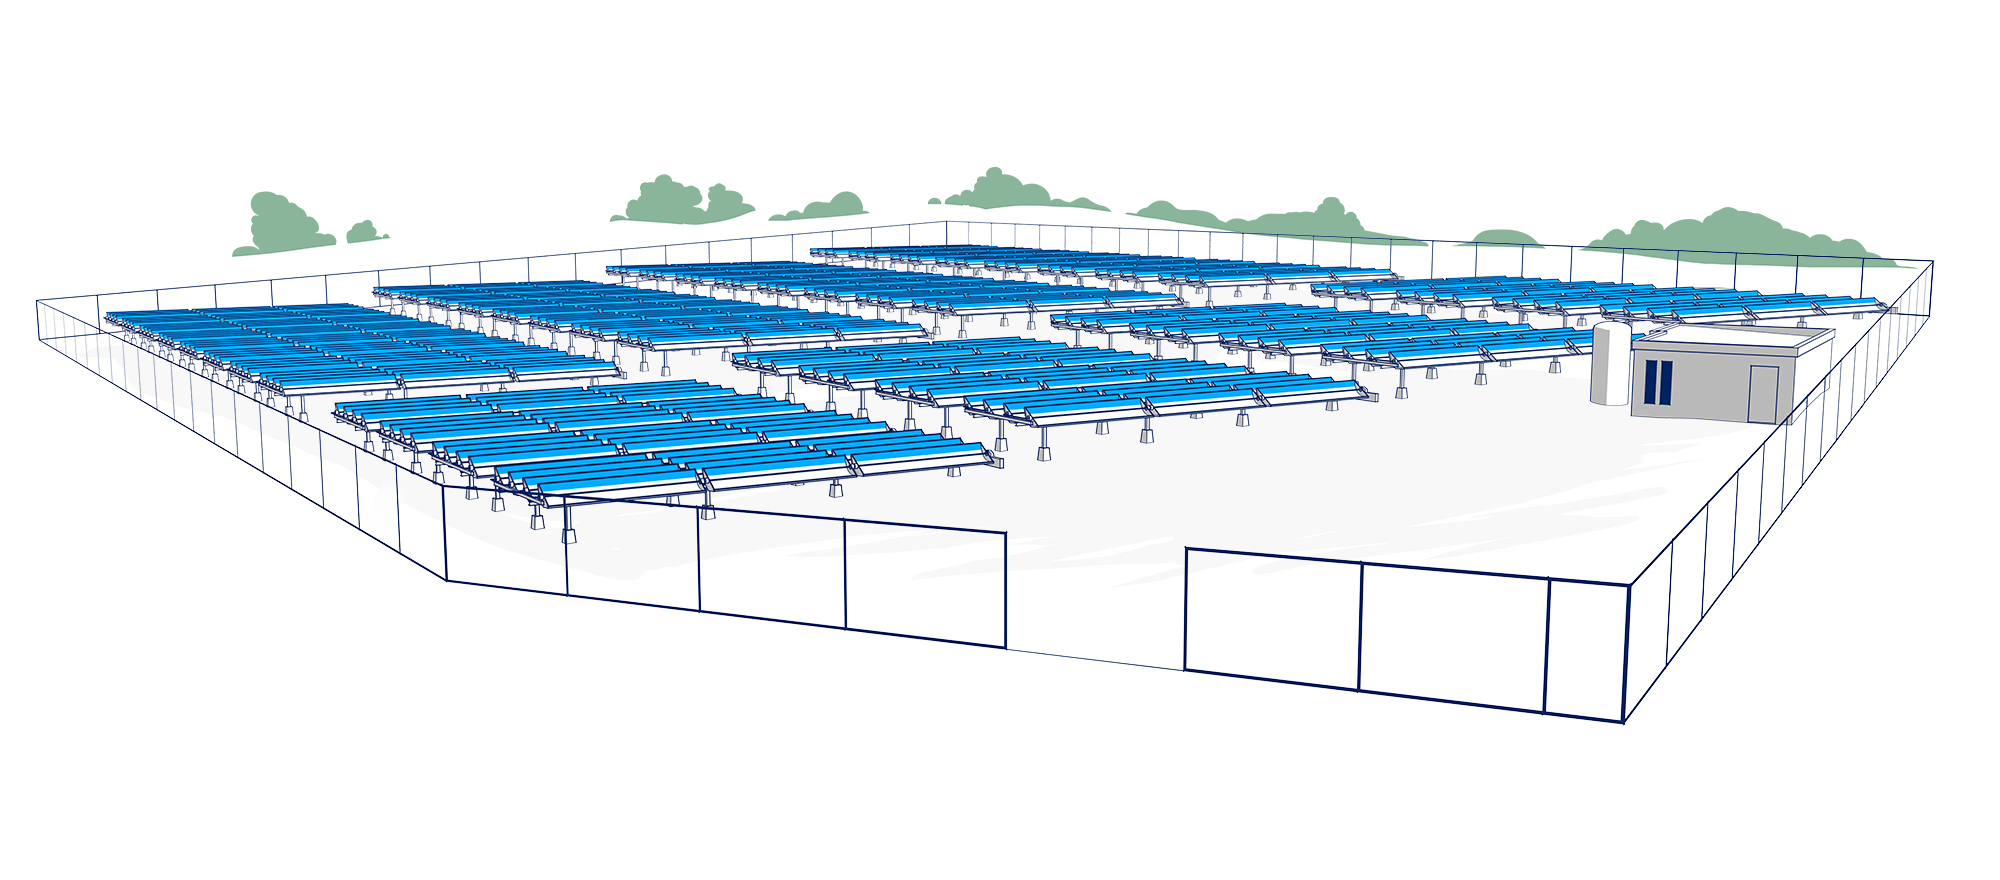 Solar thermal park for district heating.